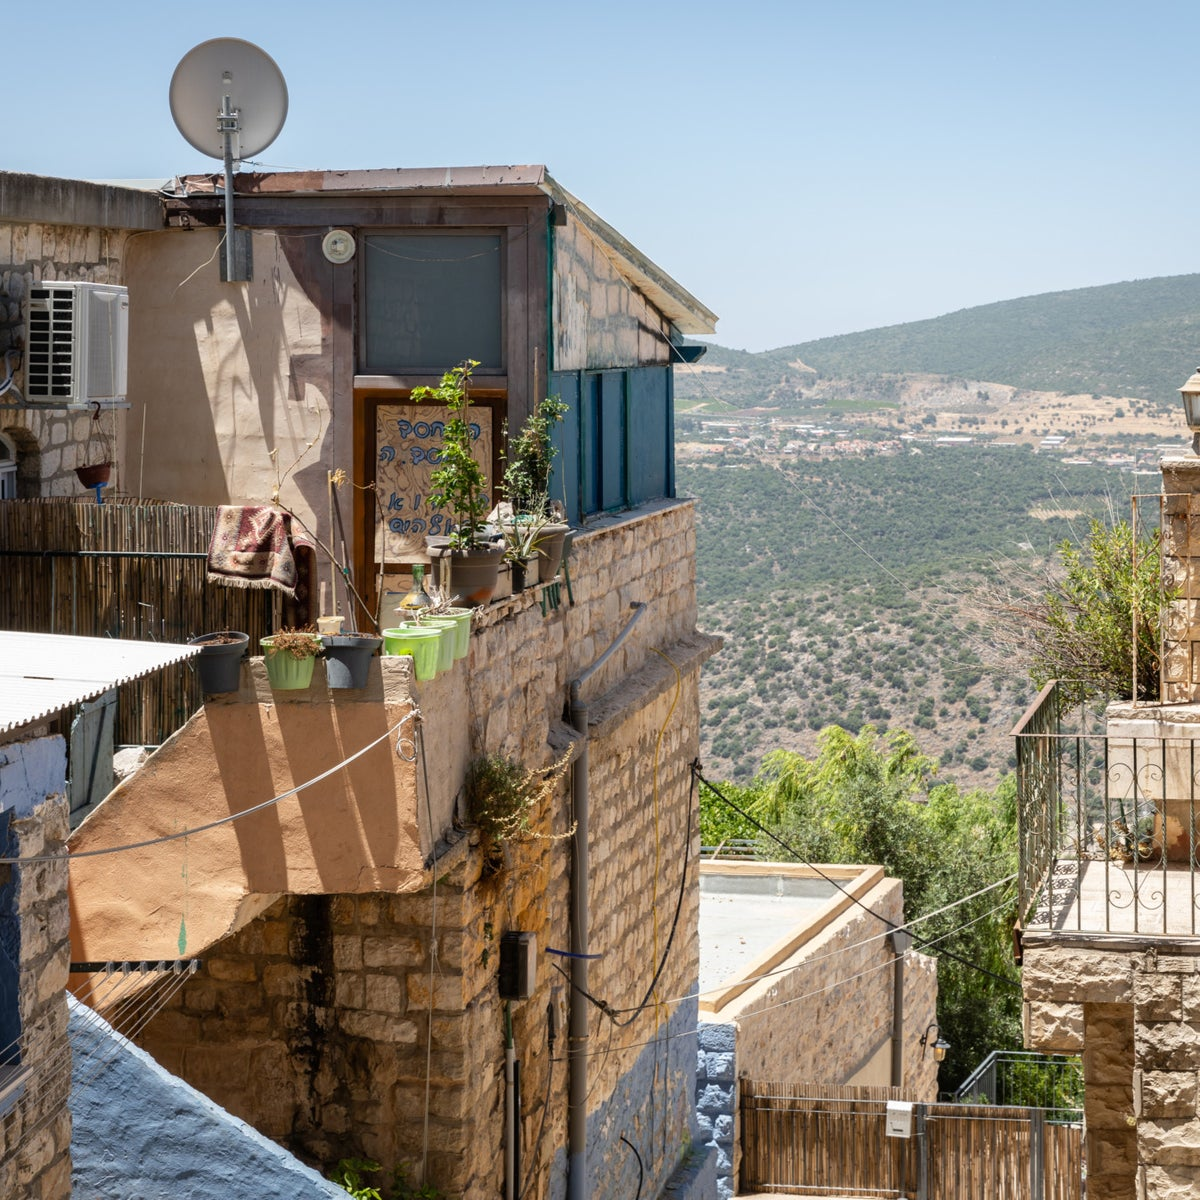 Homes in Safed, Israel's celestial hill-top city